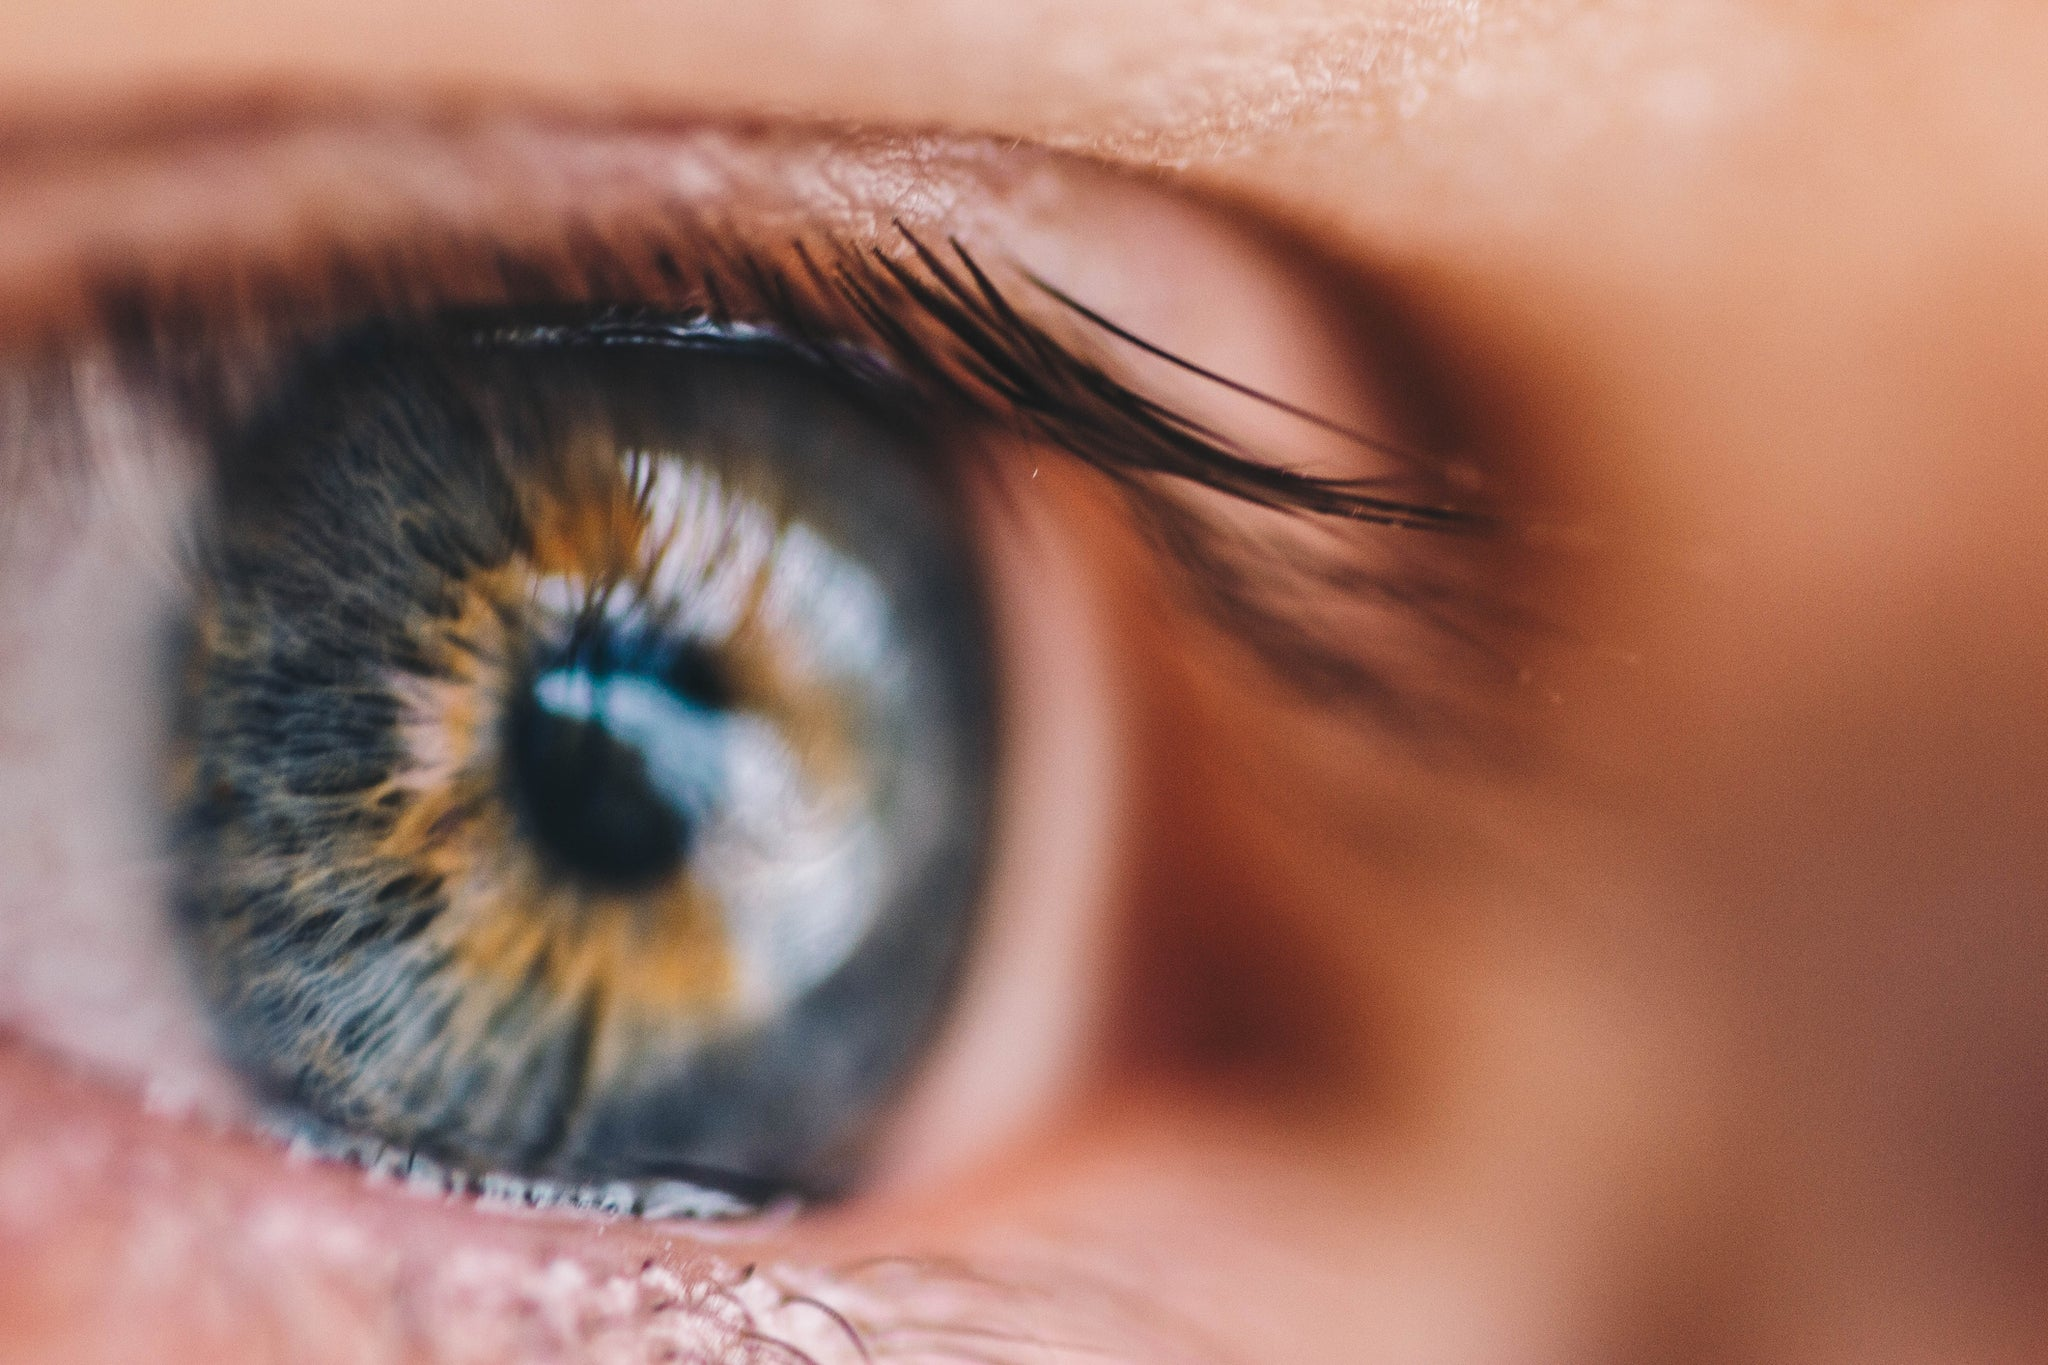 We rarely think about the benefits of Omega-3 fatty acids for our eye health. Studies have shown that these fatty acids may help protect against macular degeneration.